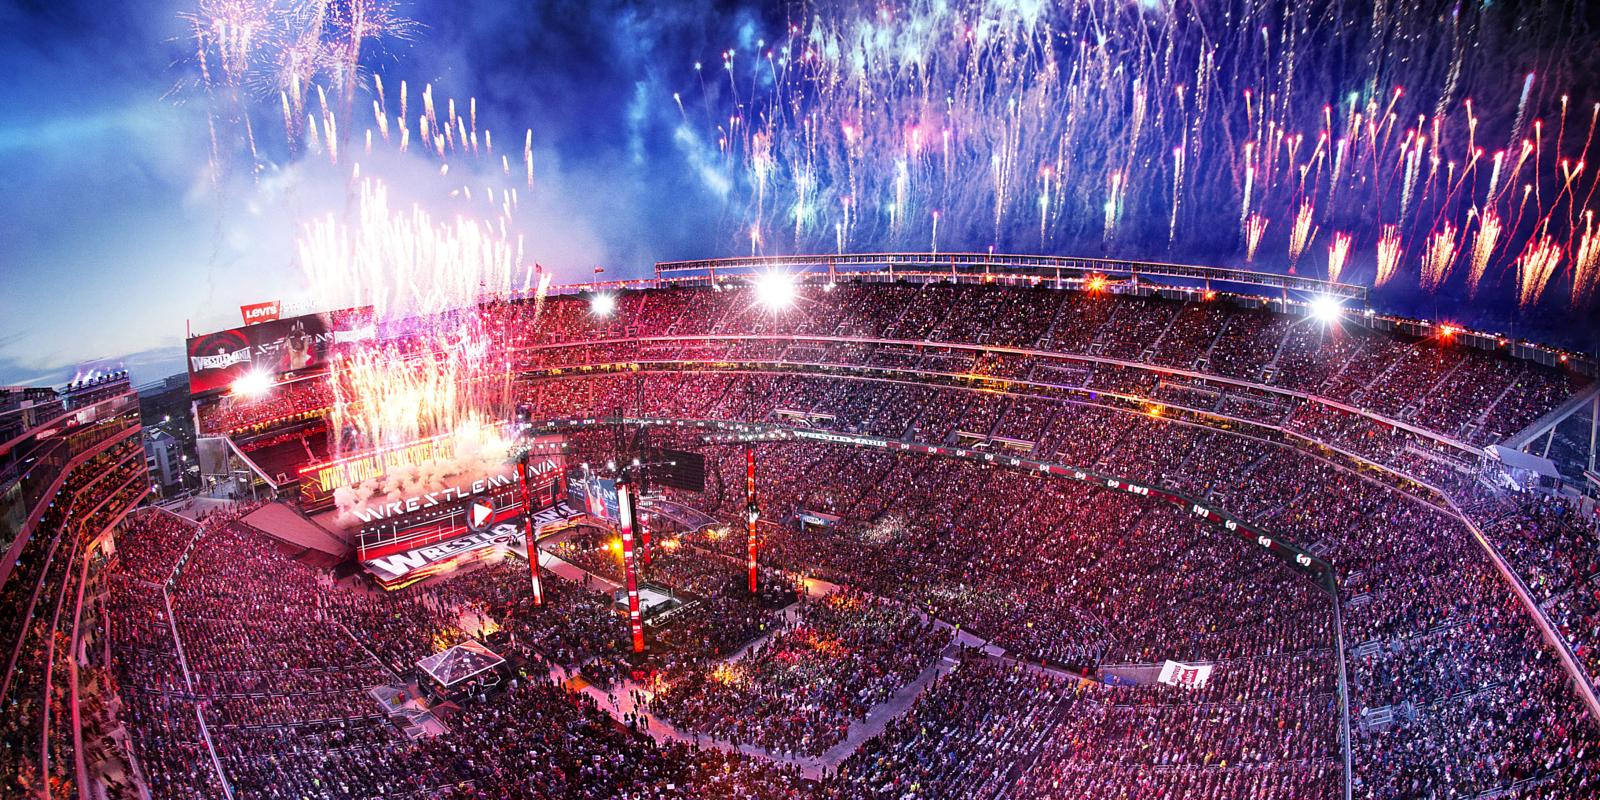 Wrestlemania 32 Tickets Go On Sale Next Month And Are